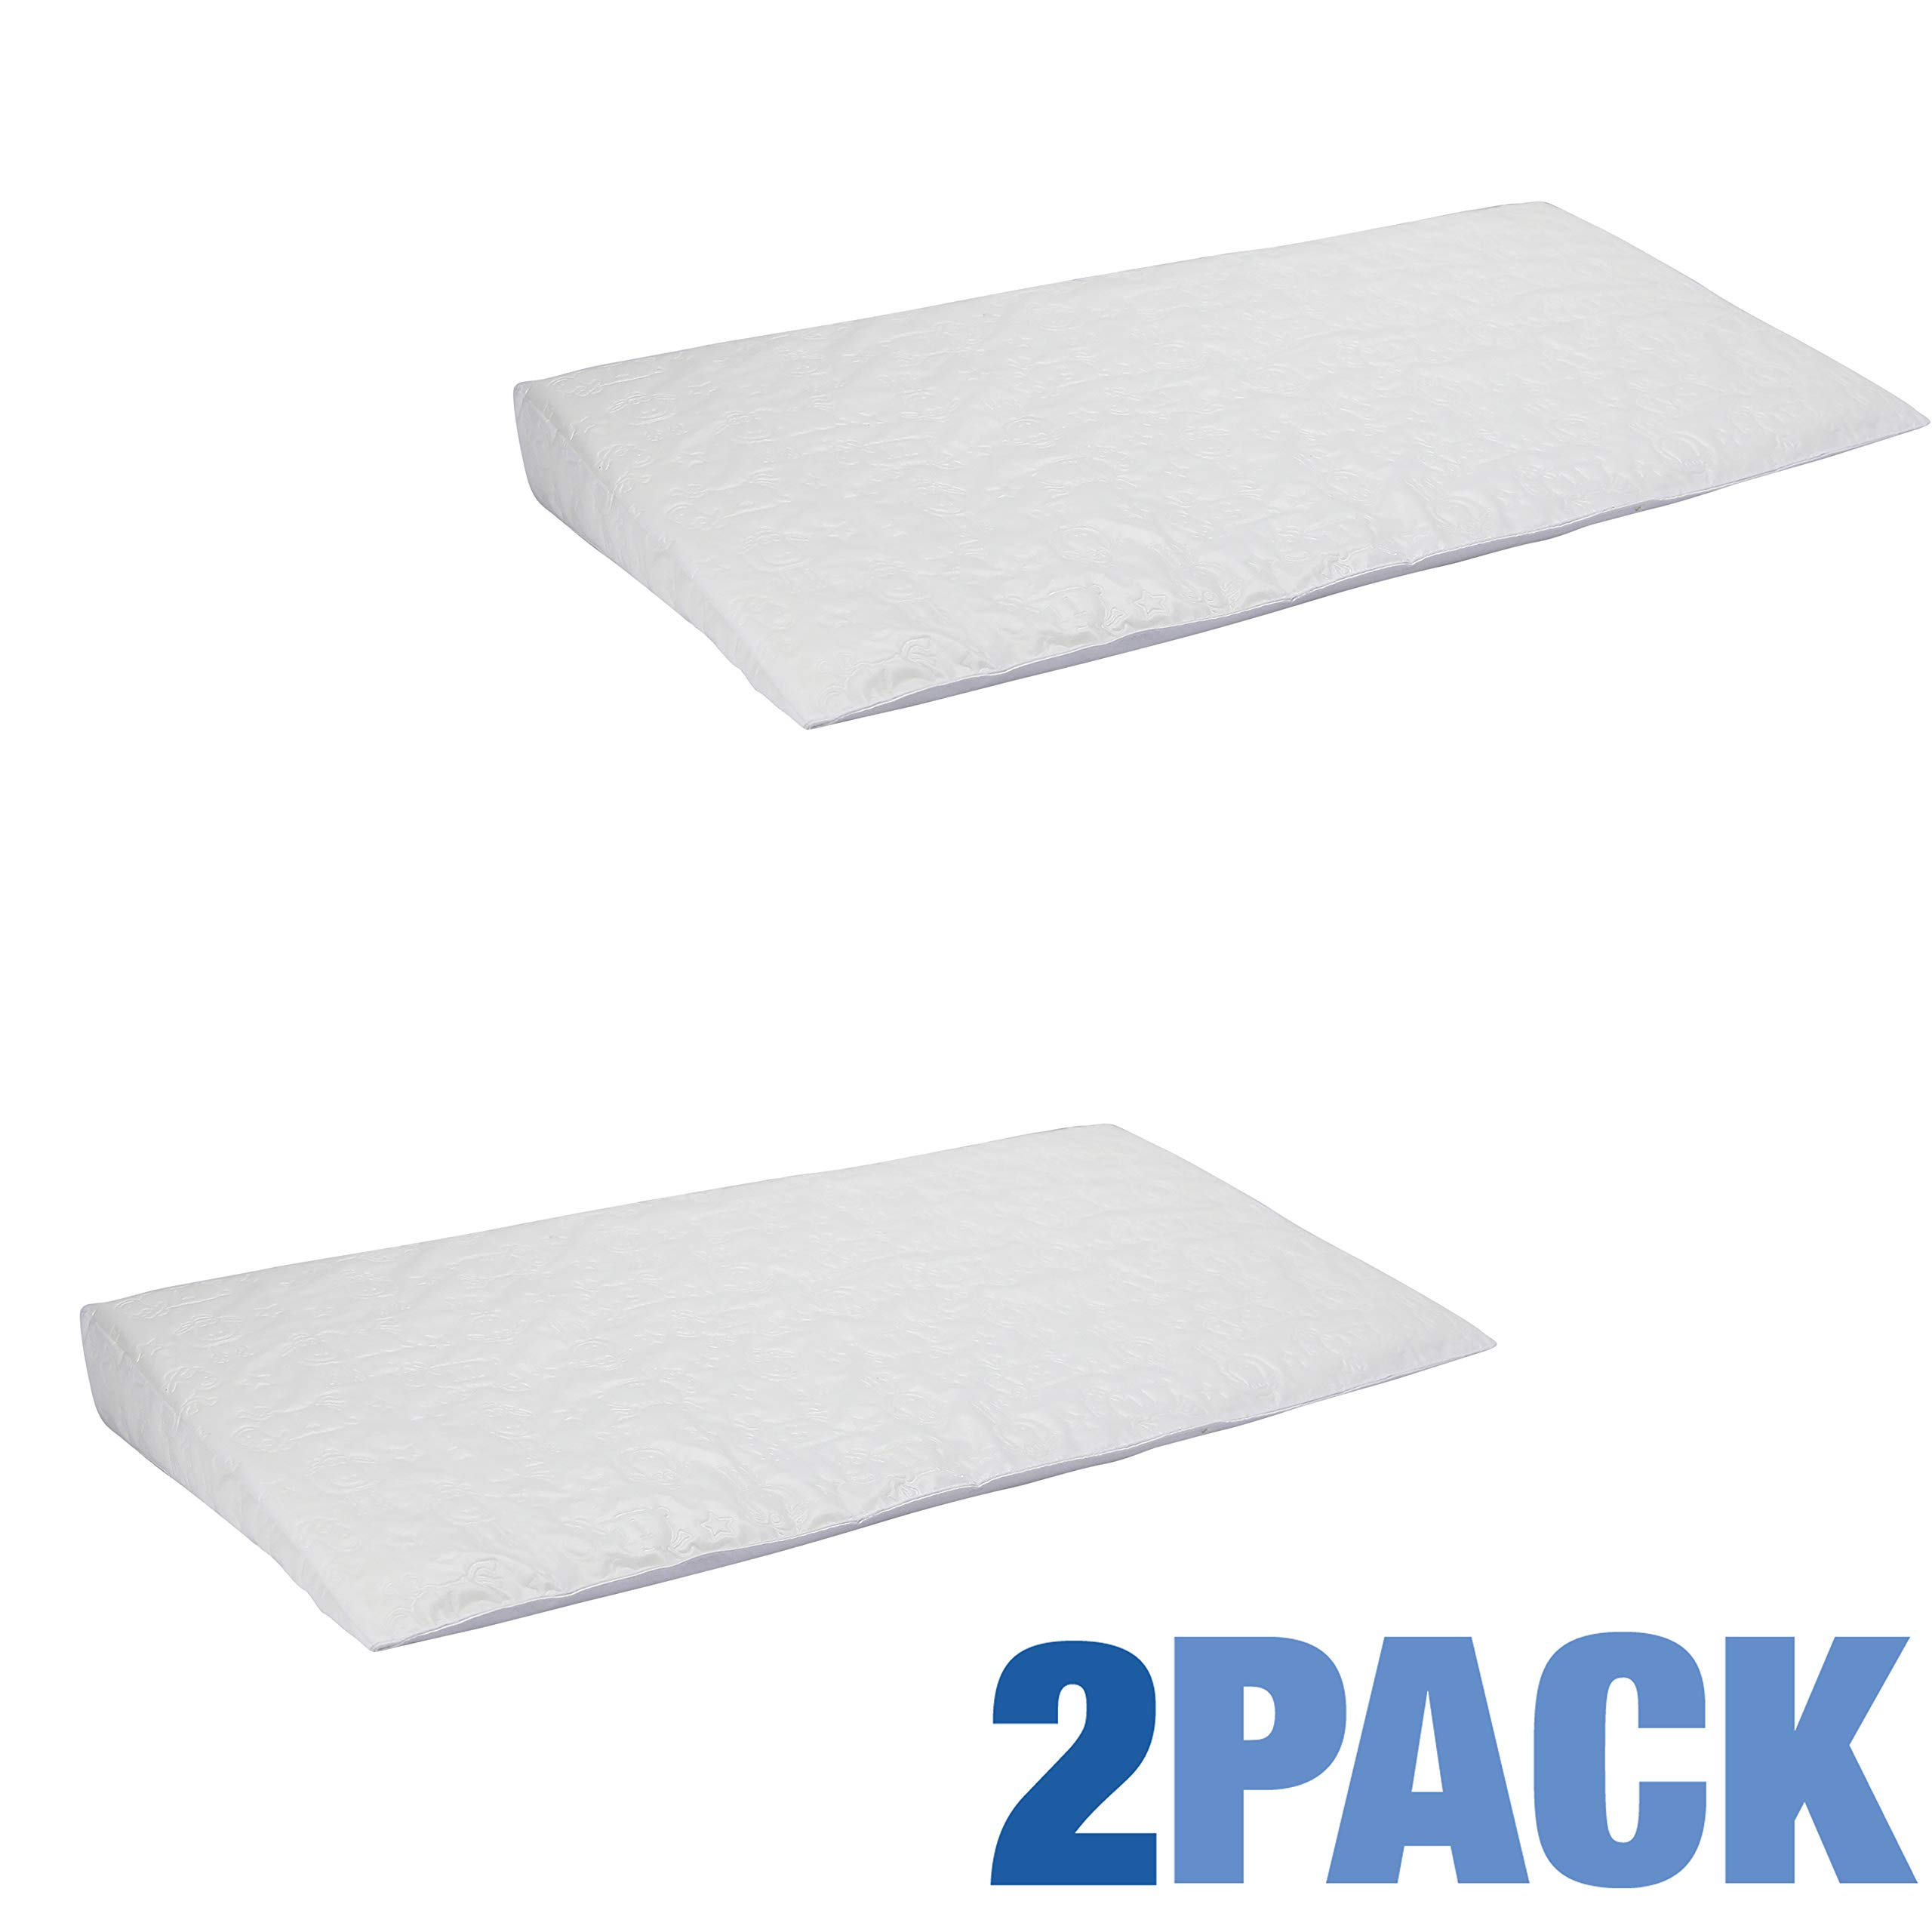 Perfect Sleeper Deluxe Crib Wedge, 2-Pack | Helps Baby with Acid Reflux and Congestion | Waterproof Cover